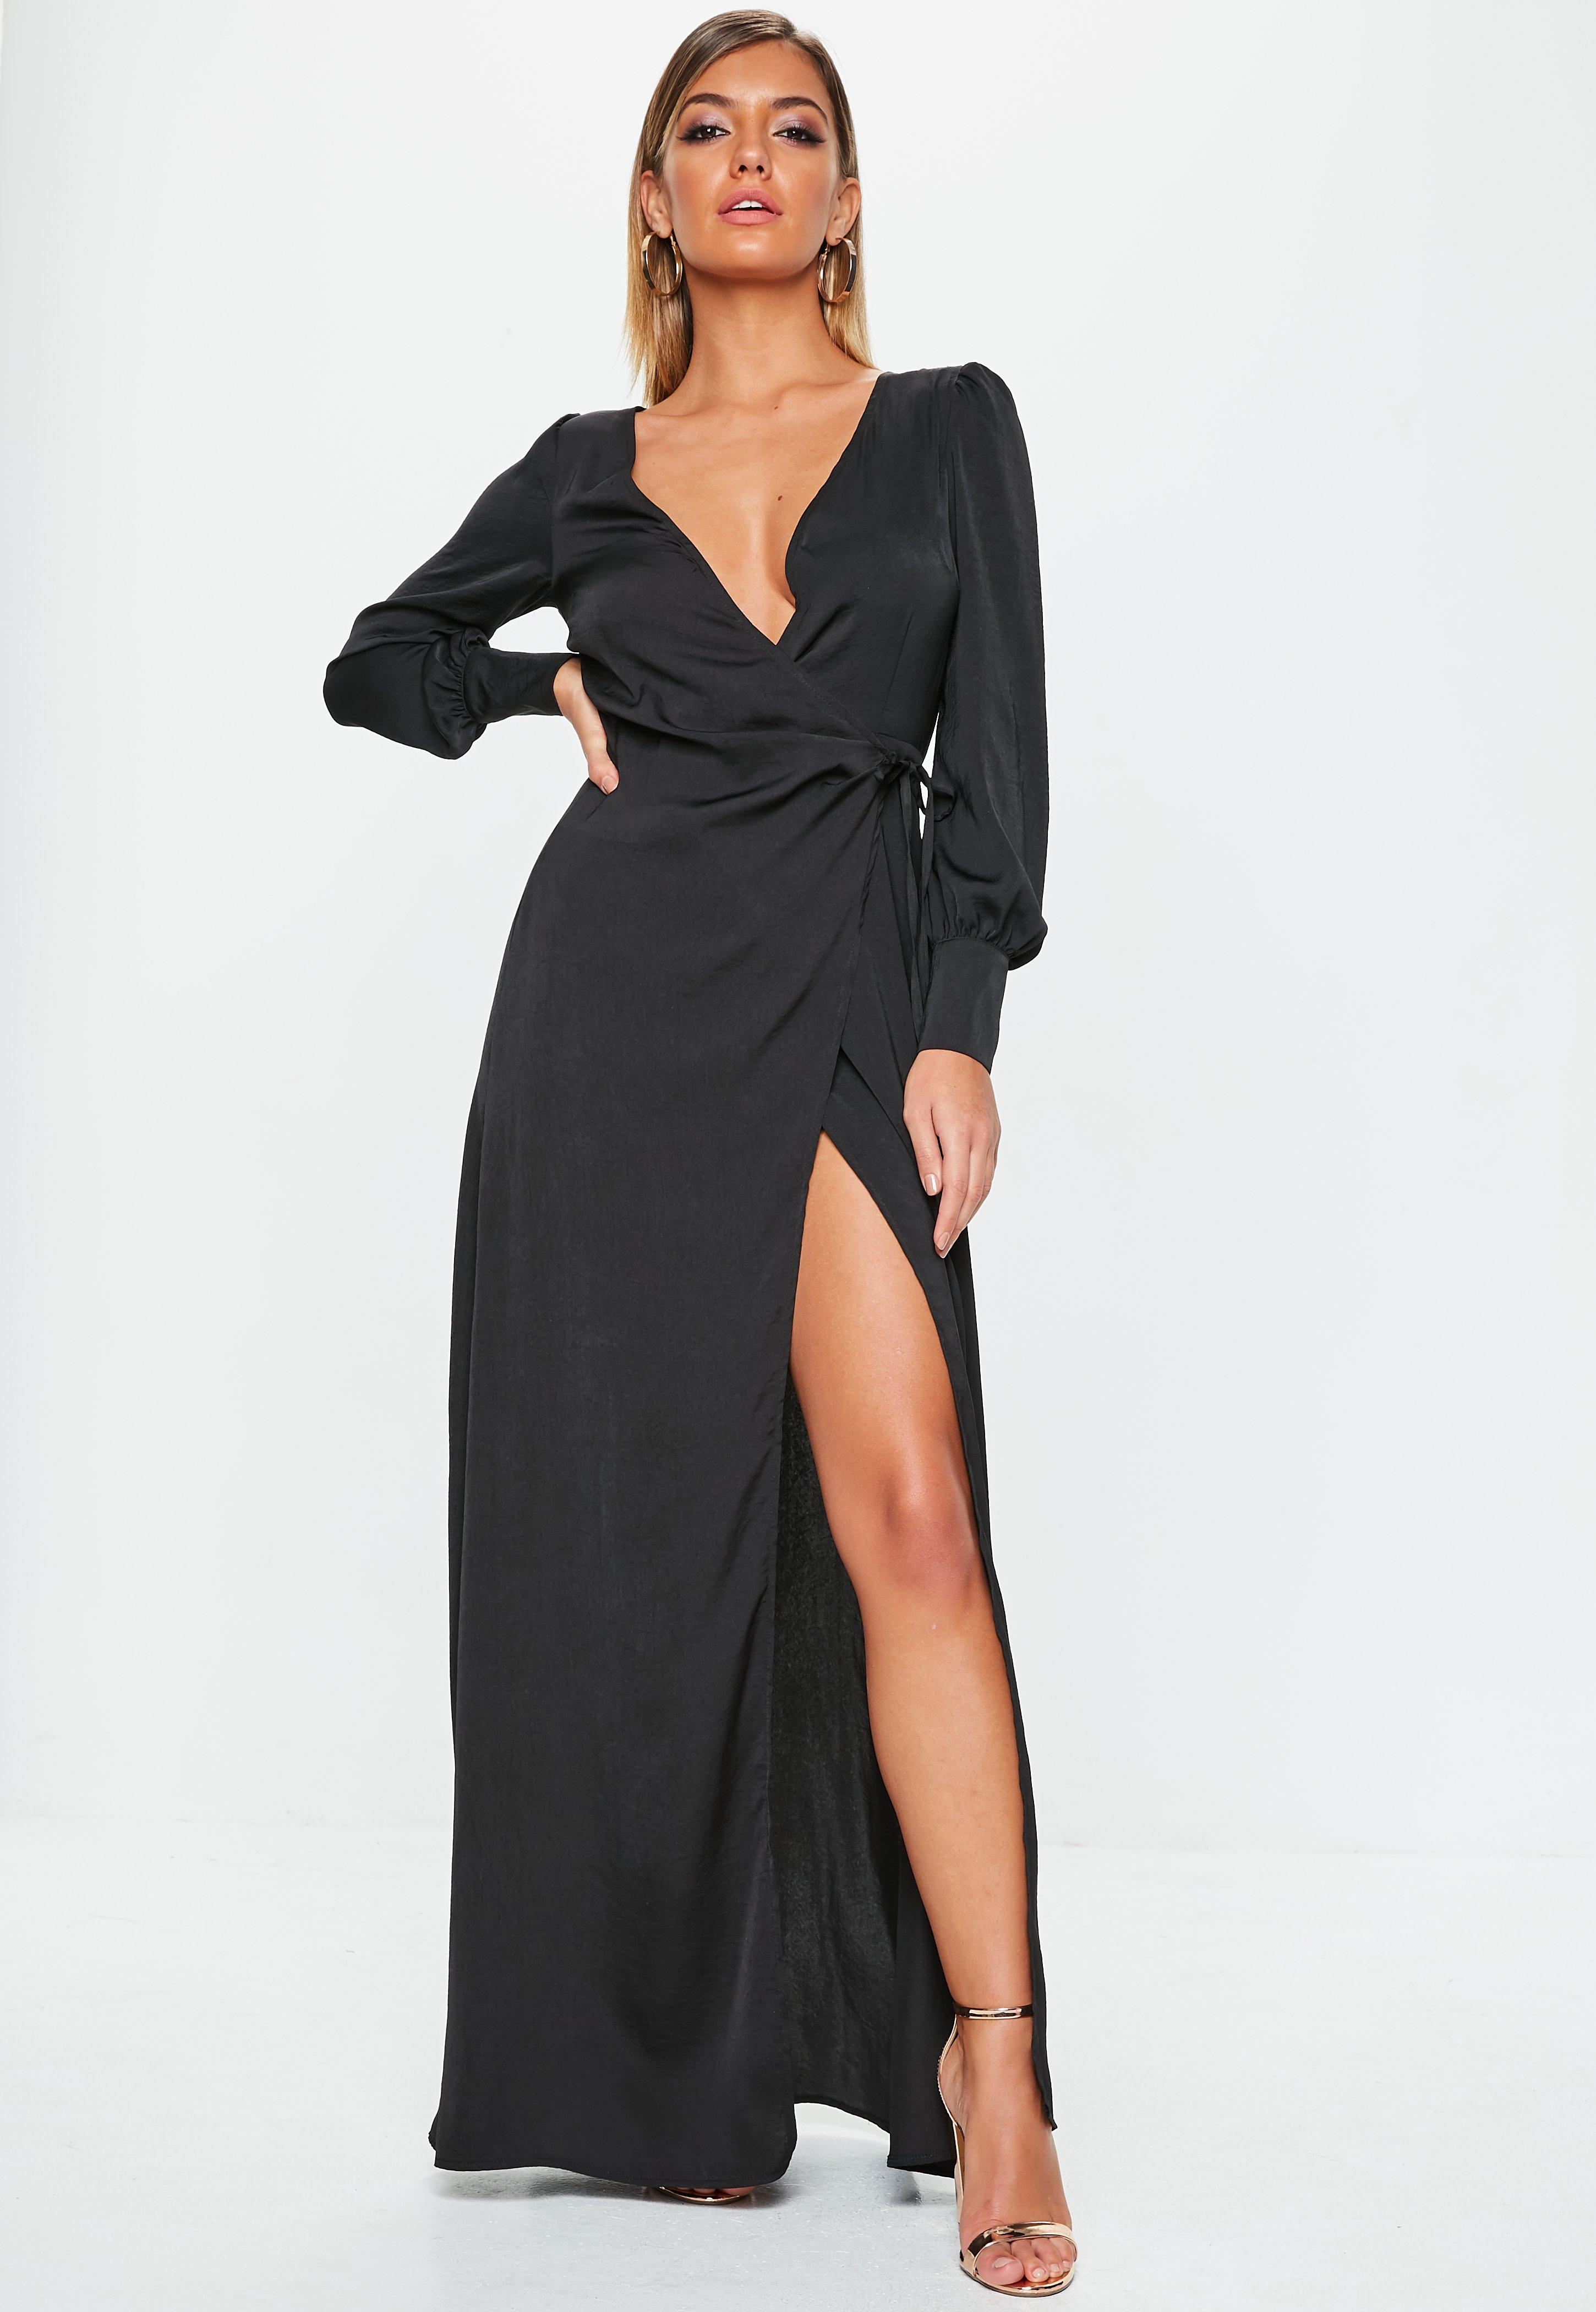 Formal Dresses | Evening Gowns & Black Tie Dresses - Missguided